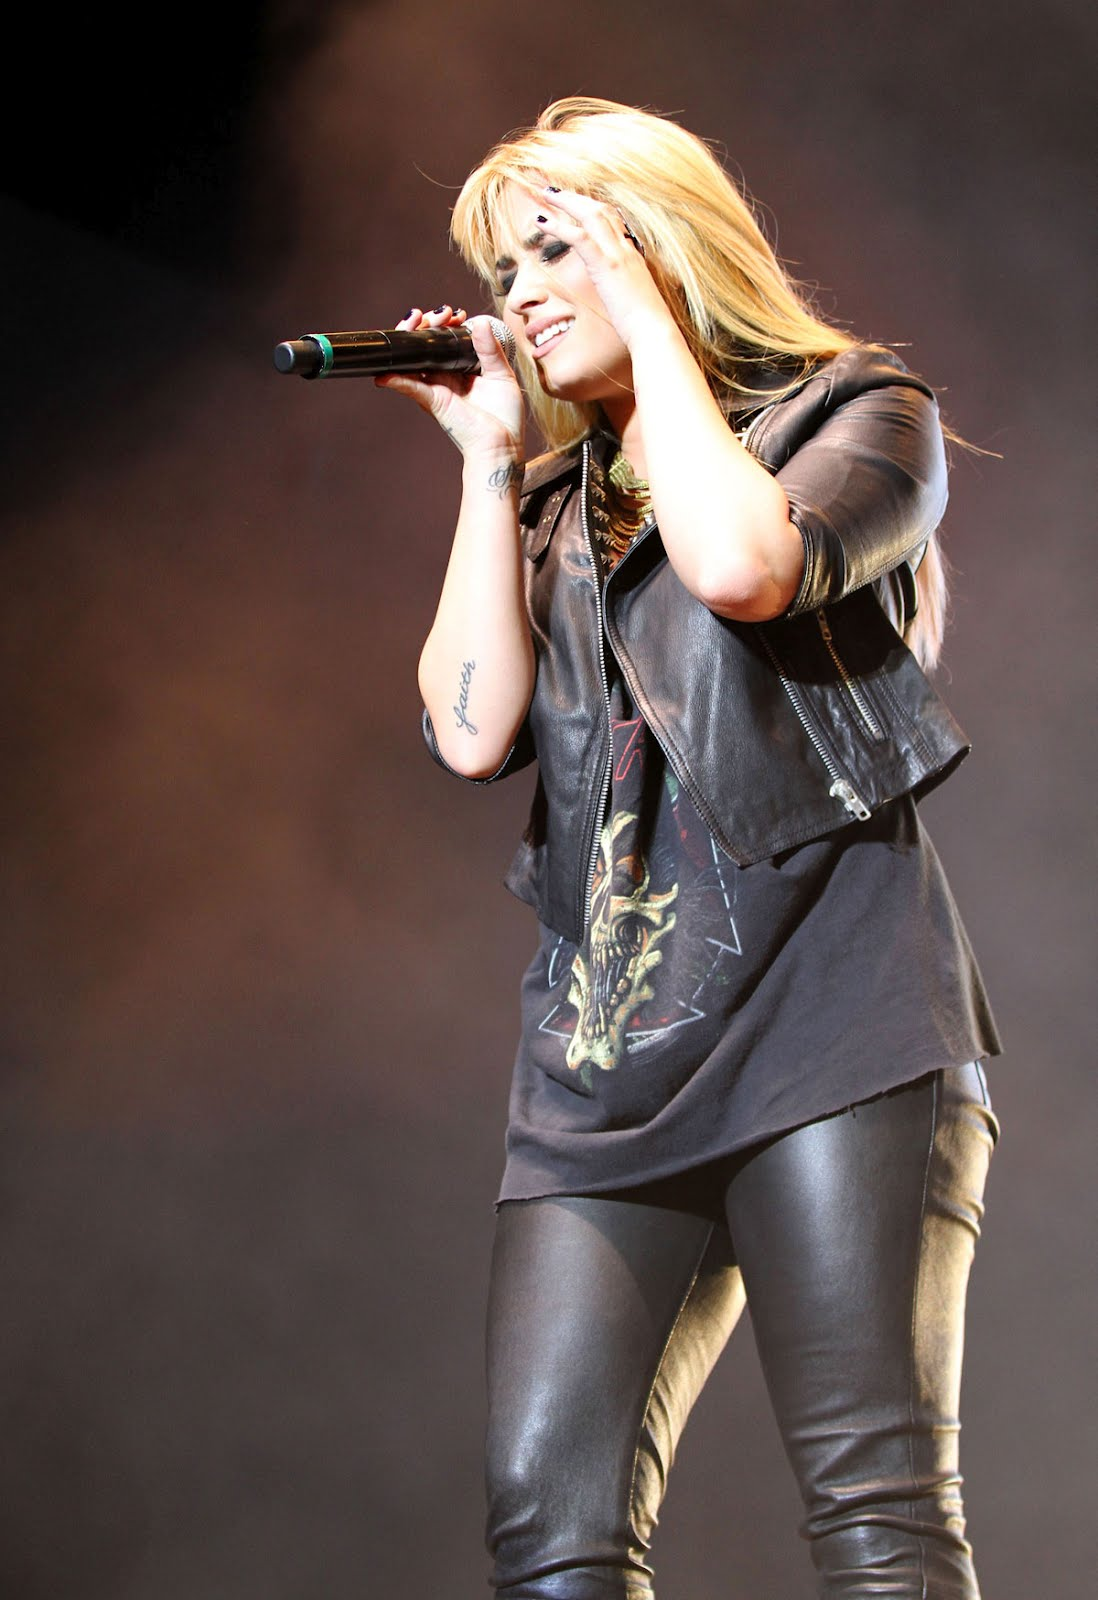 http://4.bp.blogspot.com/-cvT2RXPxmX8/UG2efB8A9_I/AAAAAAAADU4/TjDGhZ7s6-k/s1600/DEMI-LOVATO-in-Leather-Pants-Performing-at-2012-Z-Festival-in-Sao-Paulo-6.jpg